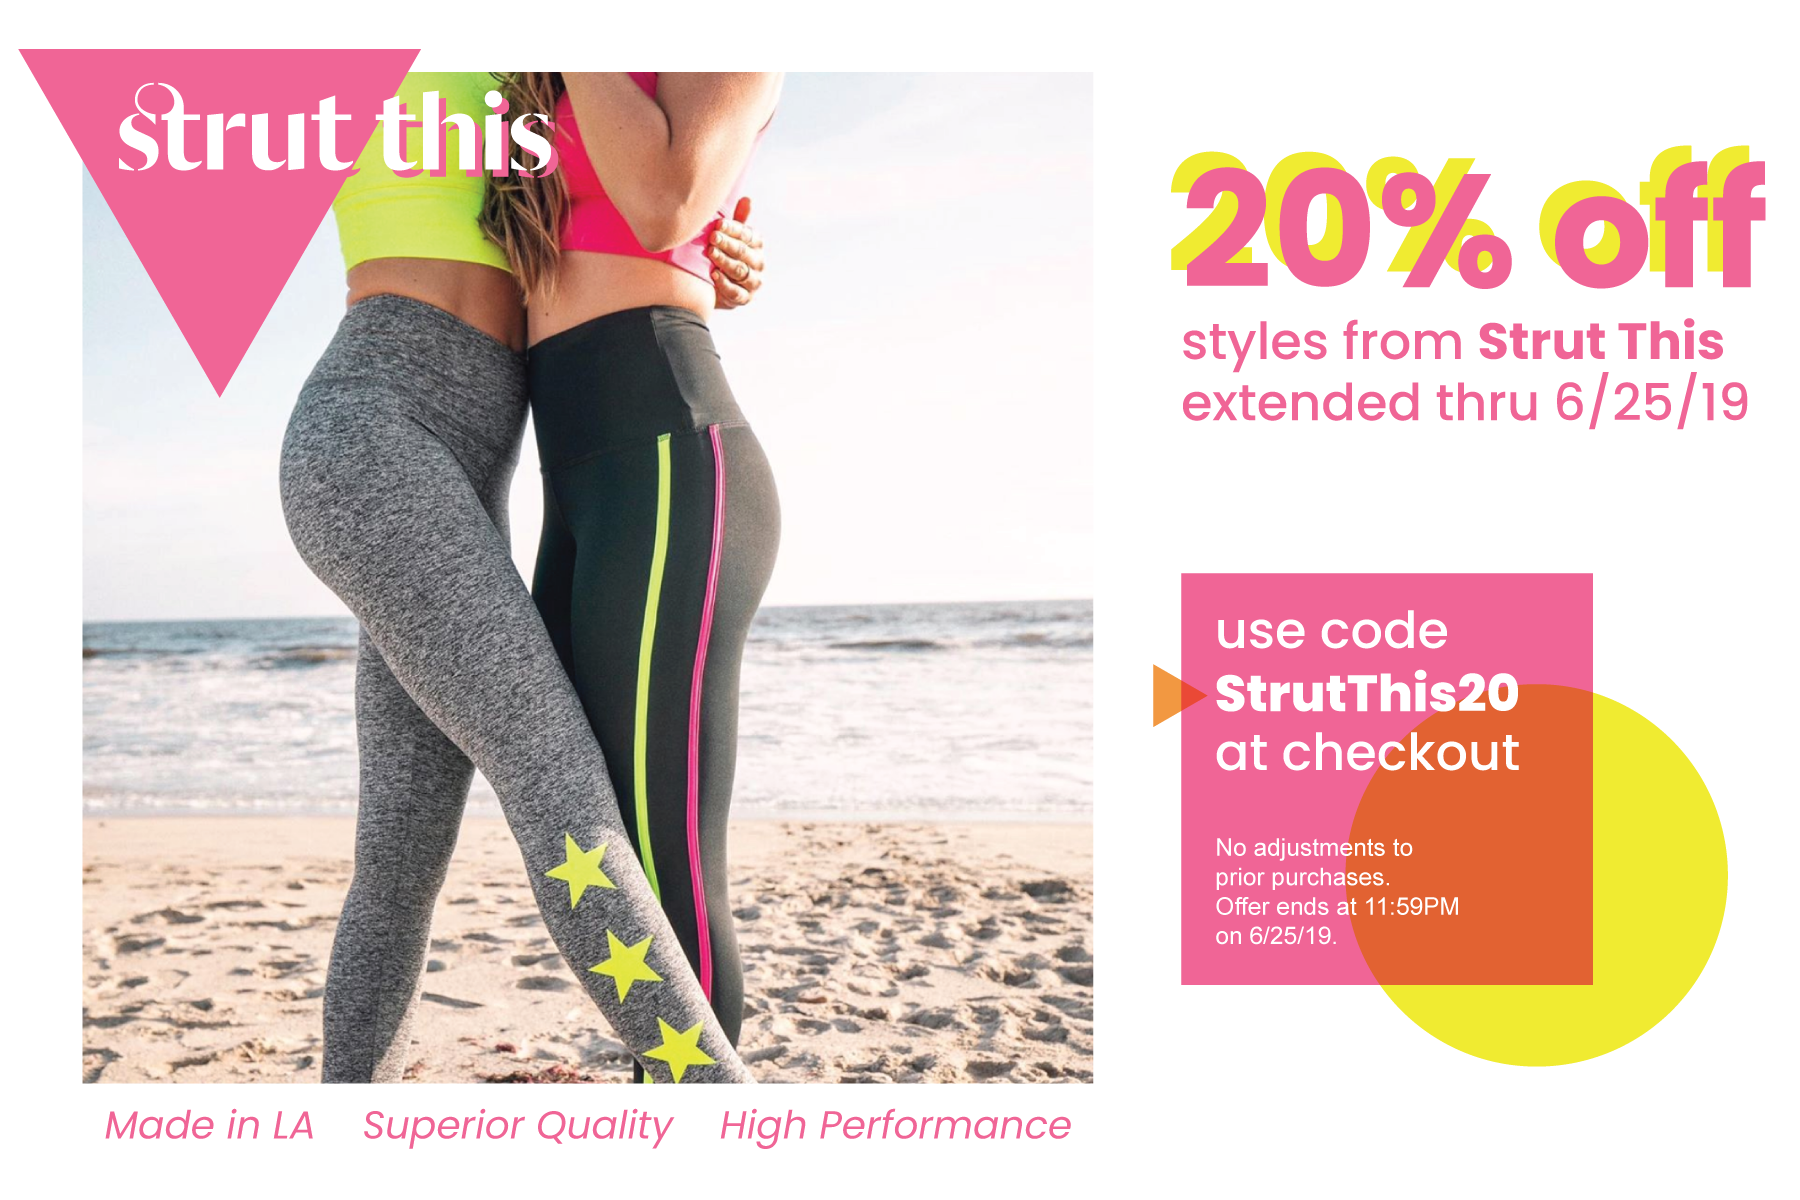 Strut This 20% off ends tomorrow